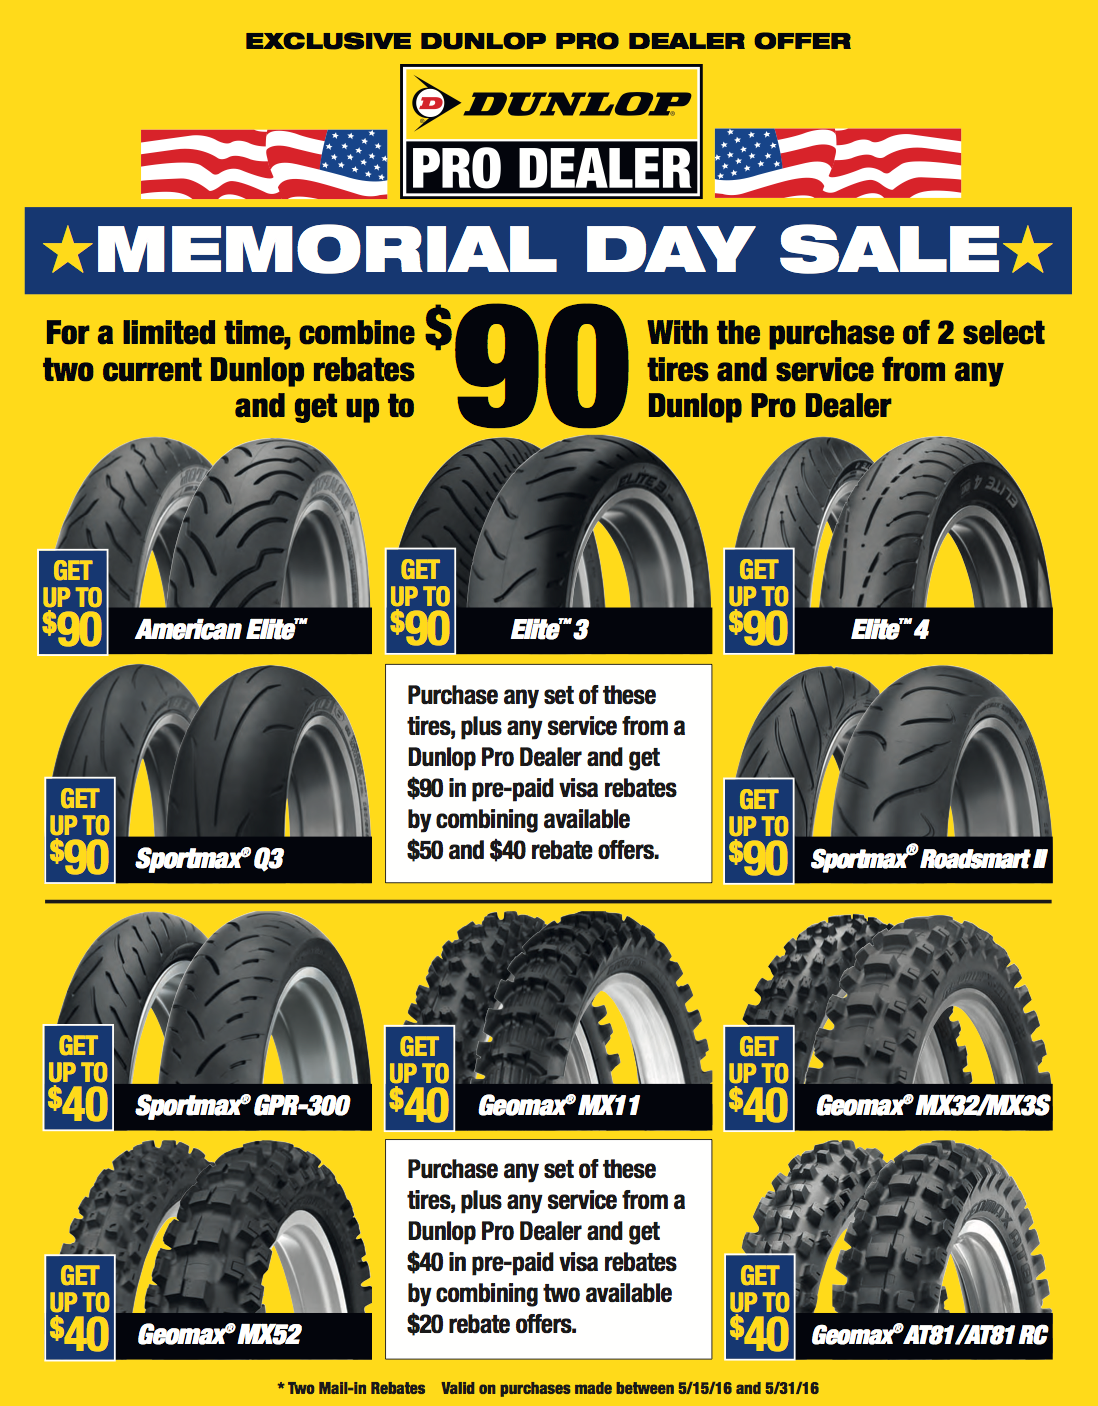 Dunlop Tire Memorial Day Rebate Sale